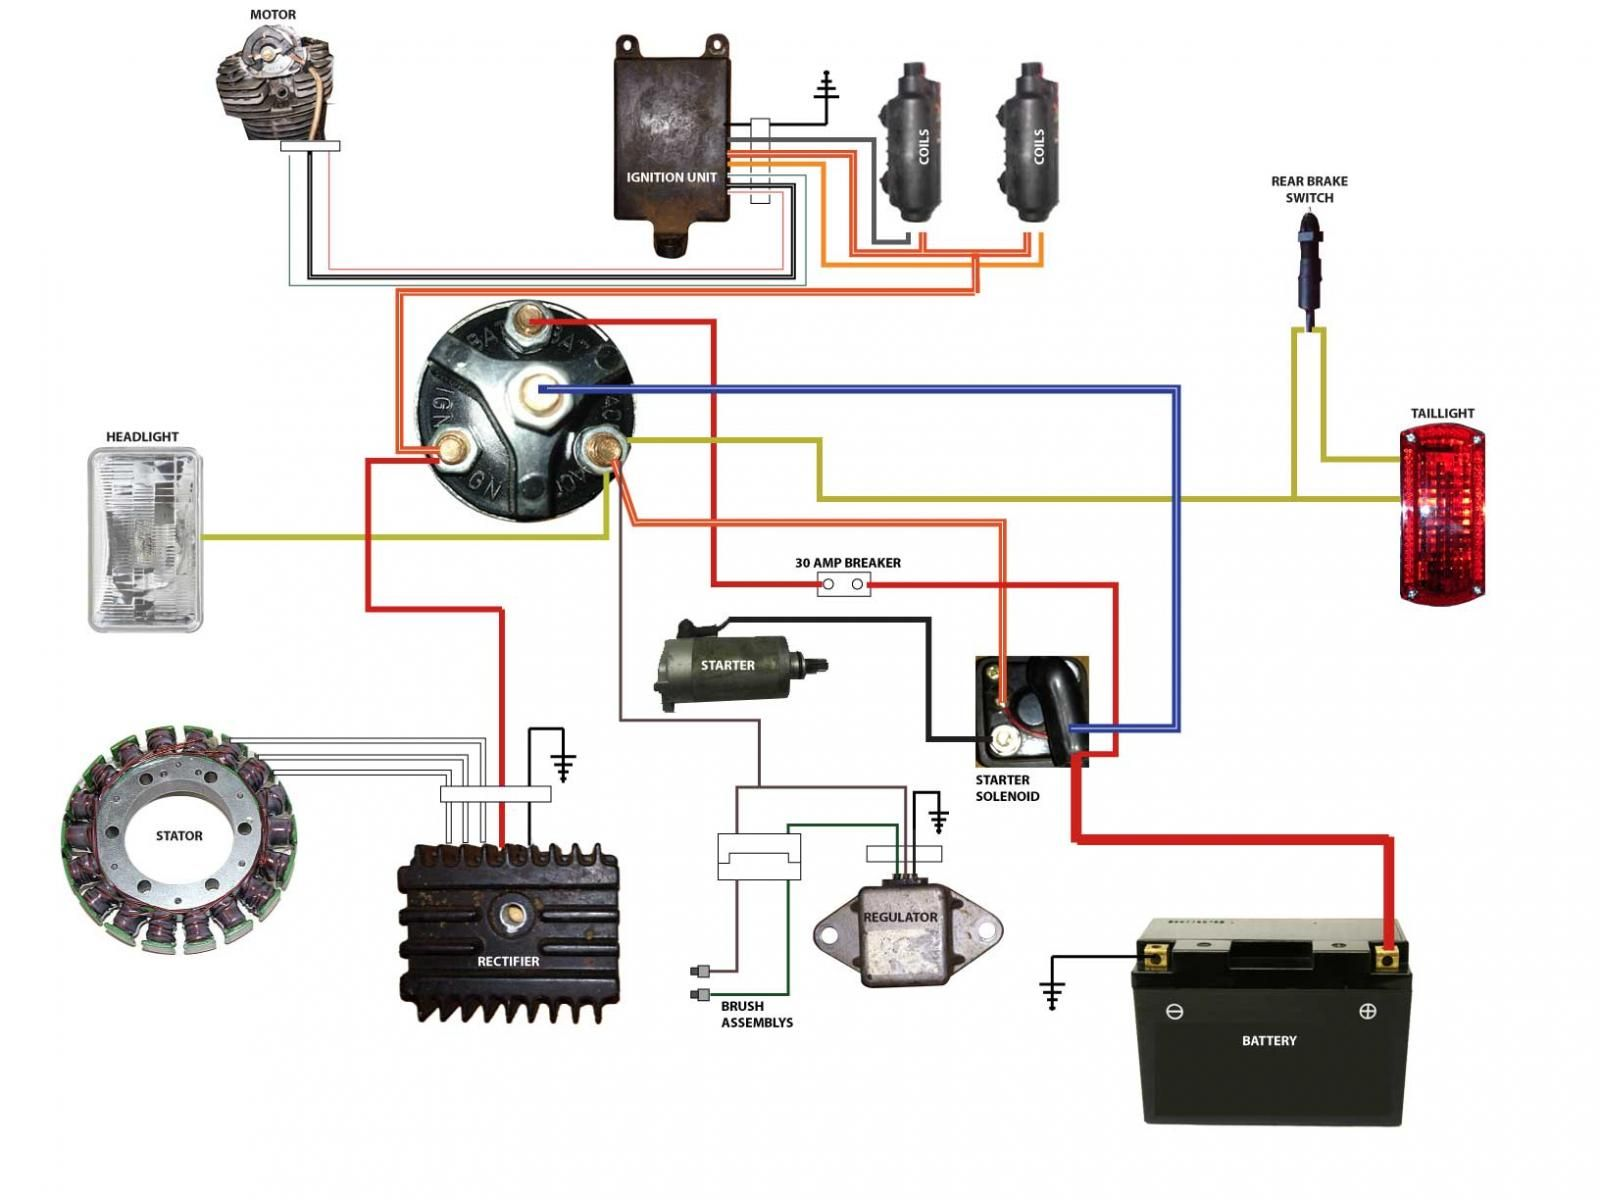 d72b6b9978ded4378b16620a38821410 simplified wiring diagram for xs400 cafe motorcycle wiring XS400 Forum at crackthecode.co